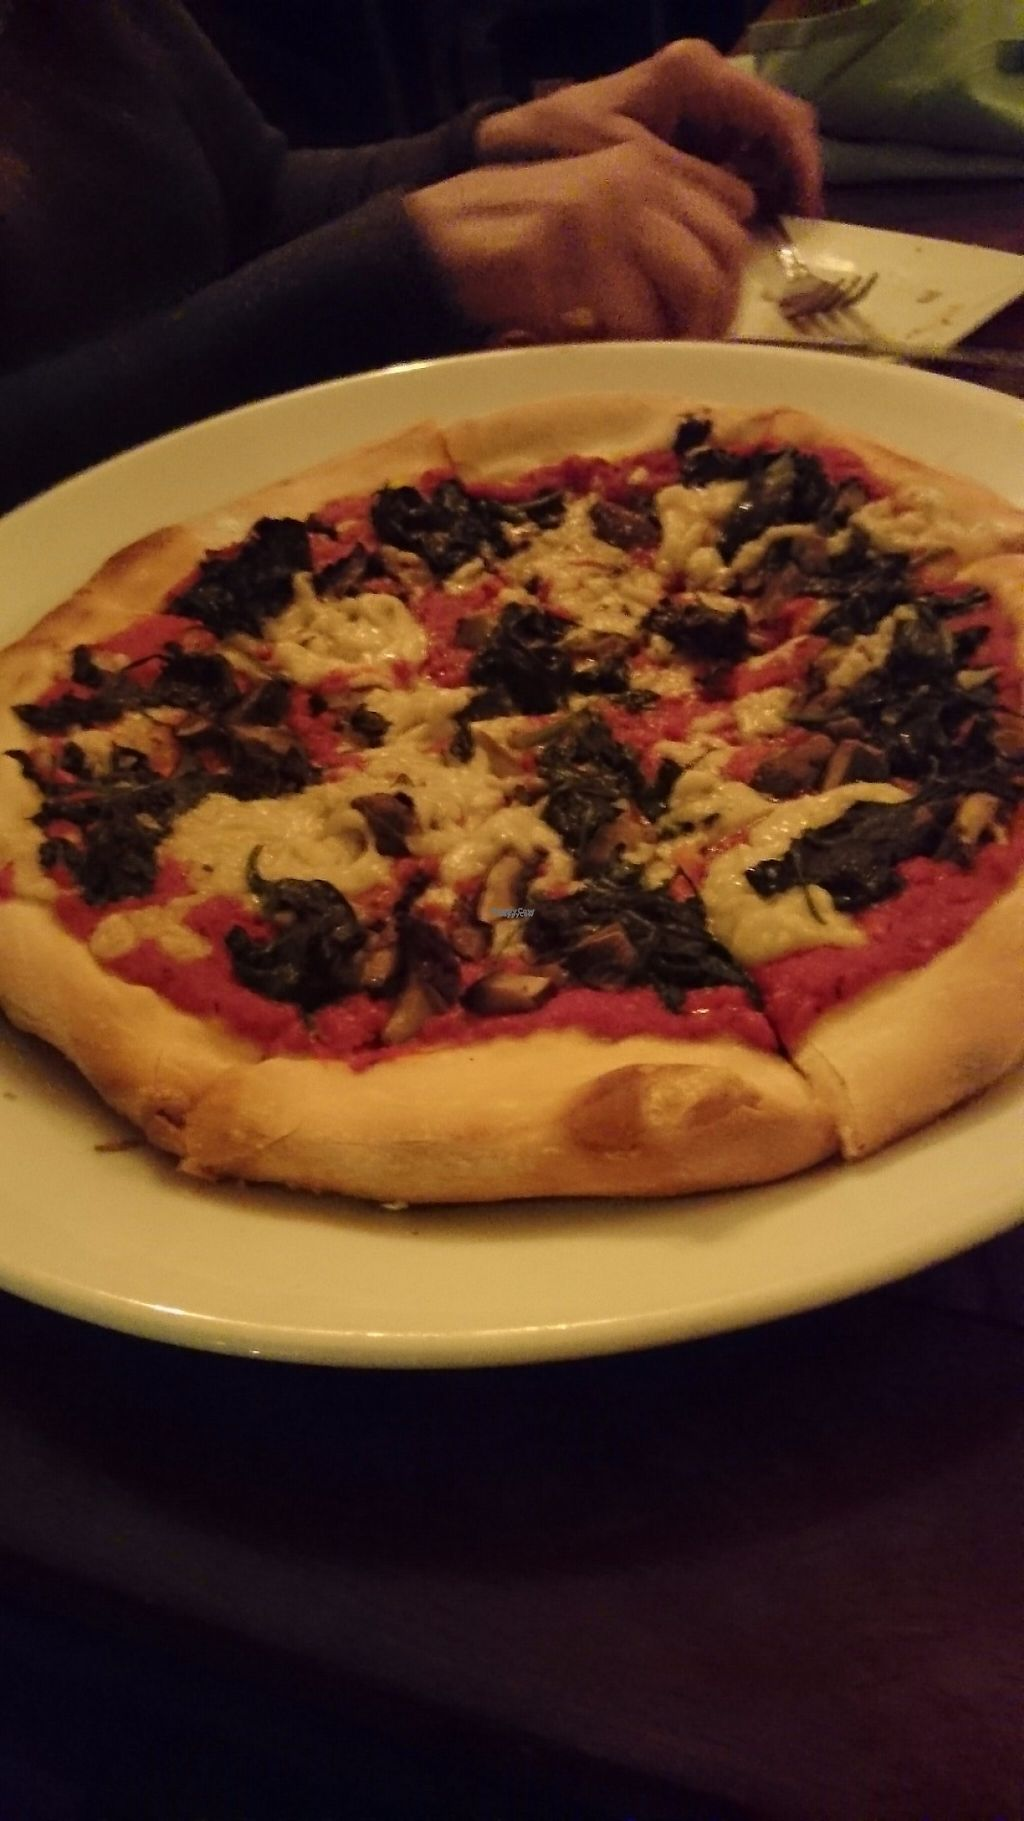 """Photo of Great American Pub  by <a href=""""/members/profile/ZoraySpielvogel"""">ZoraySpielvogel</a> <br/>Vegan pizza  <br/> March 31, 2017  - <a href='/contact/abuse/image/81793/243157'>Report</a>"""